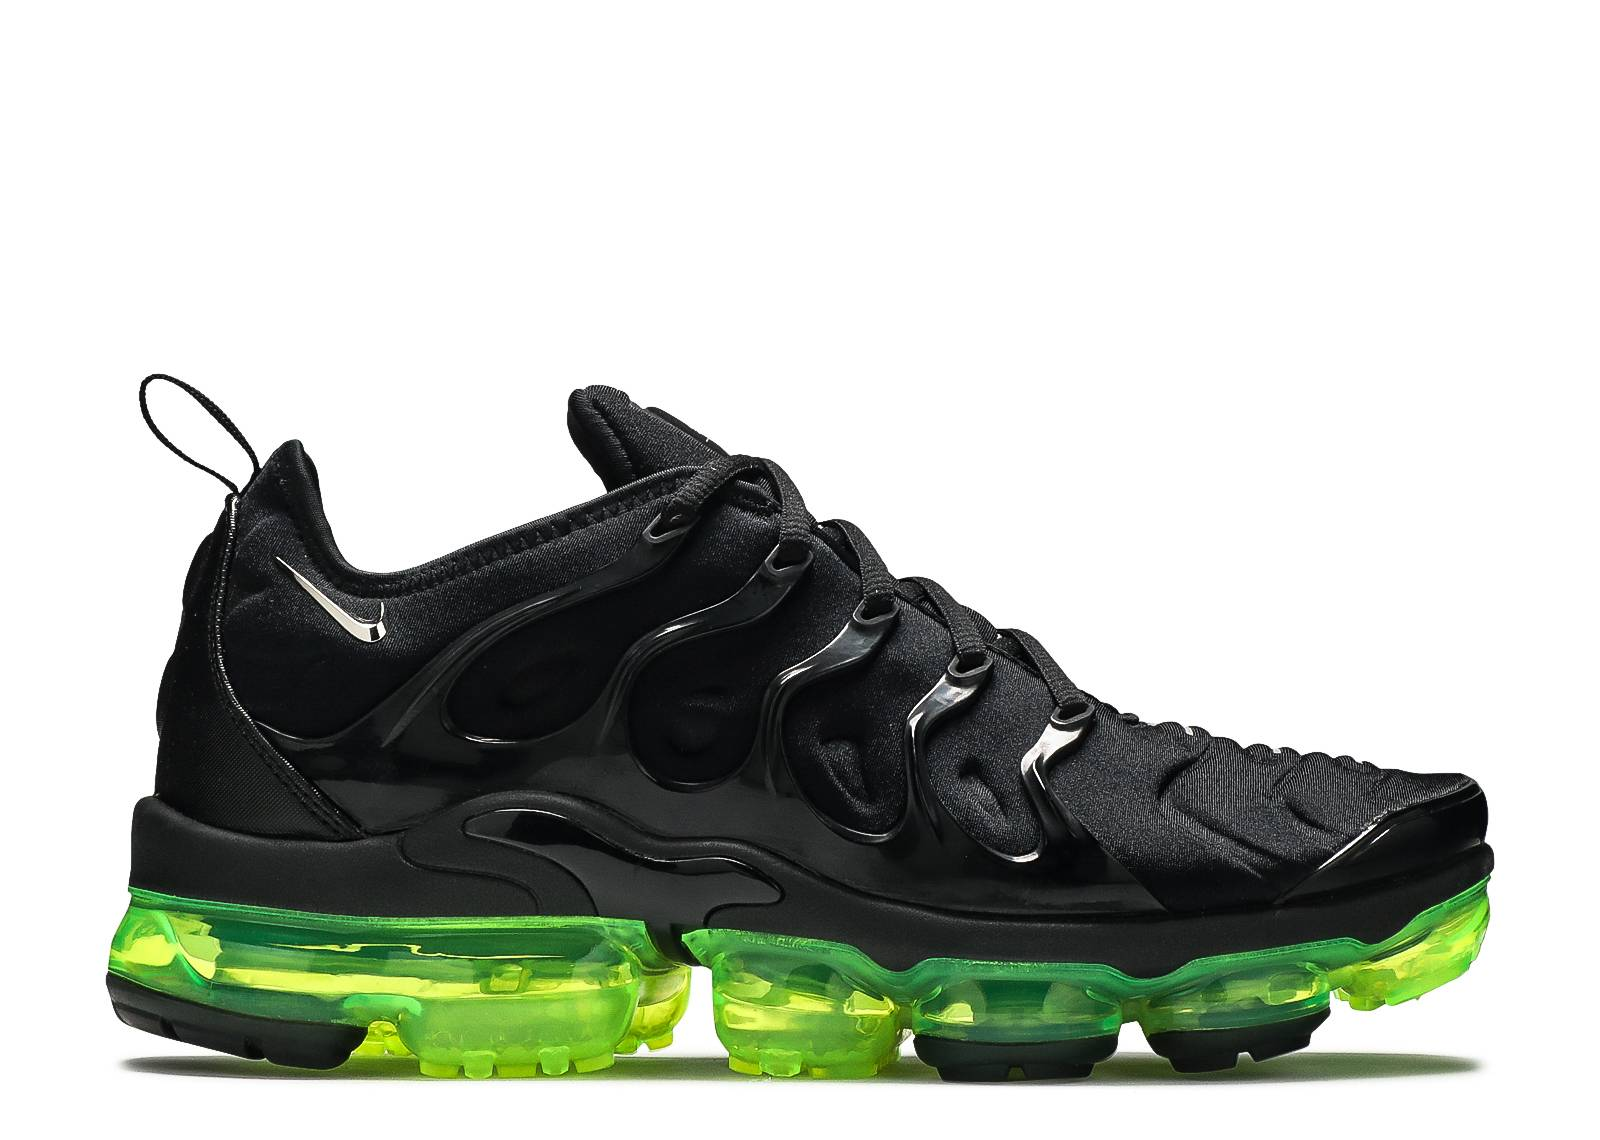 f2e900e983 Vapormax - Nike Running - Nike | Flight Club